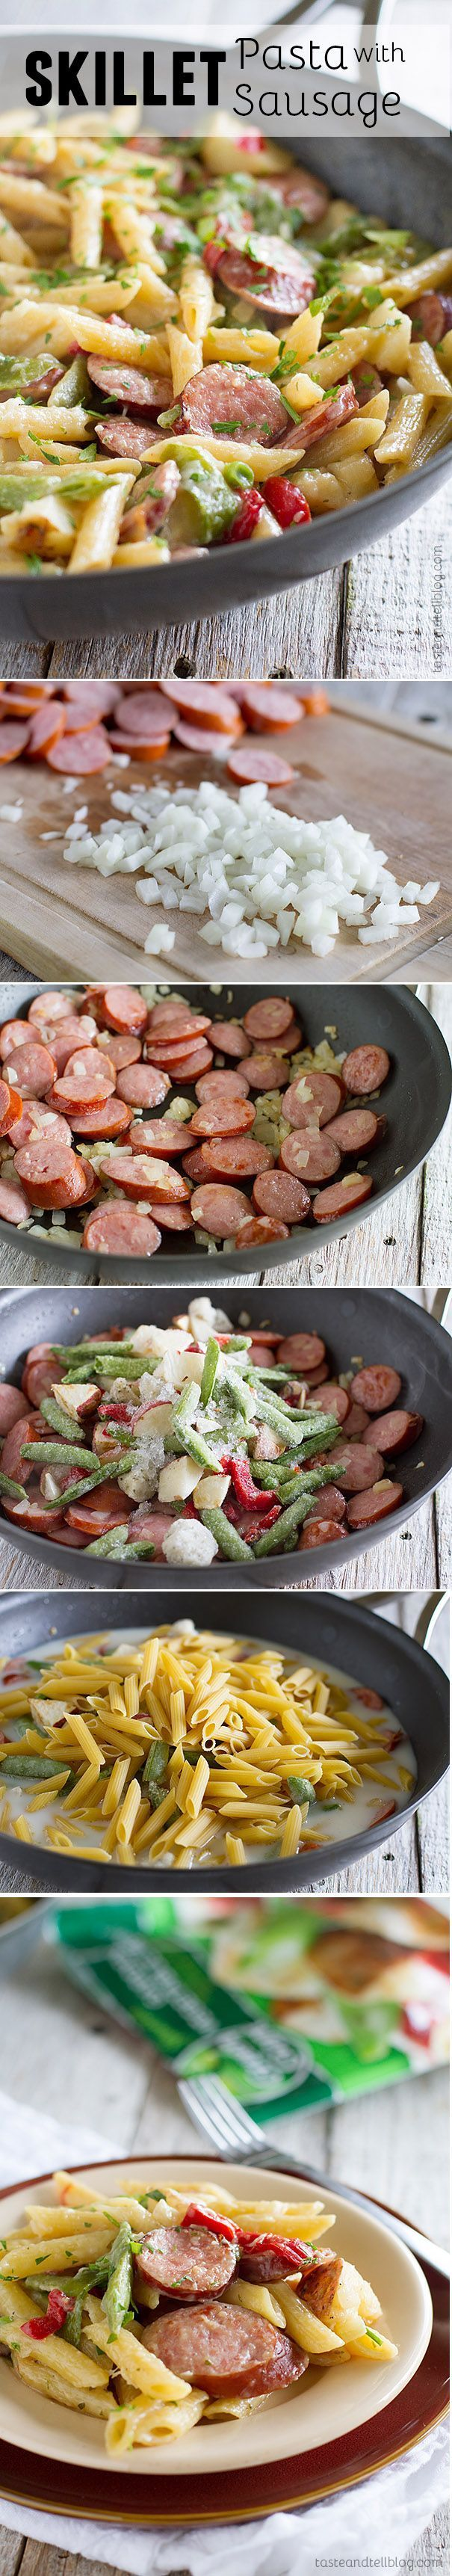 Skillet Pasta with Sausage - this one pan meal is ready in no time at all and your family will love it!: